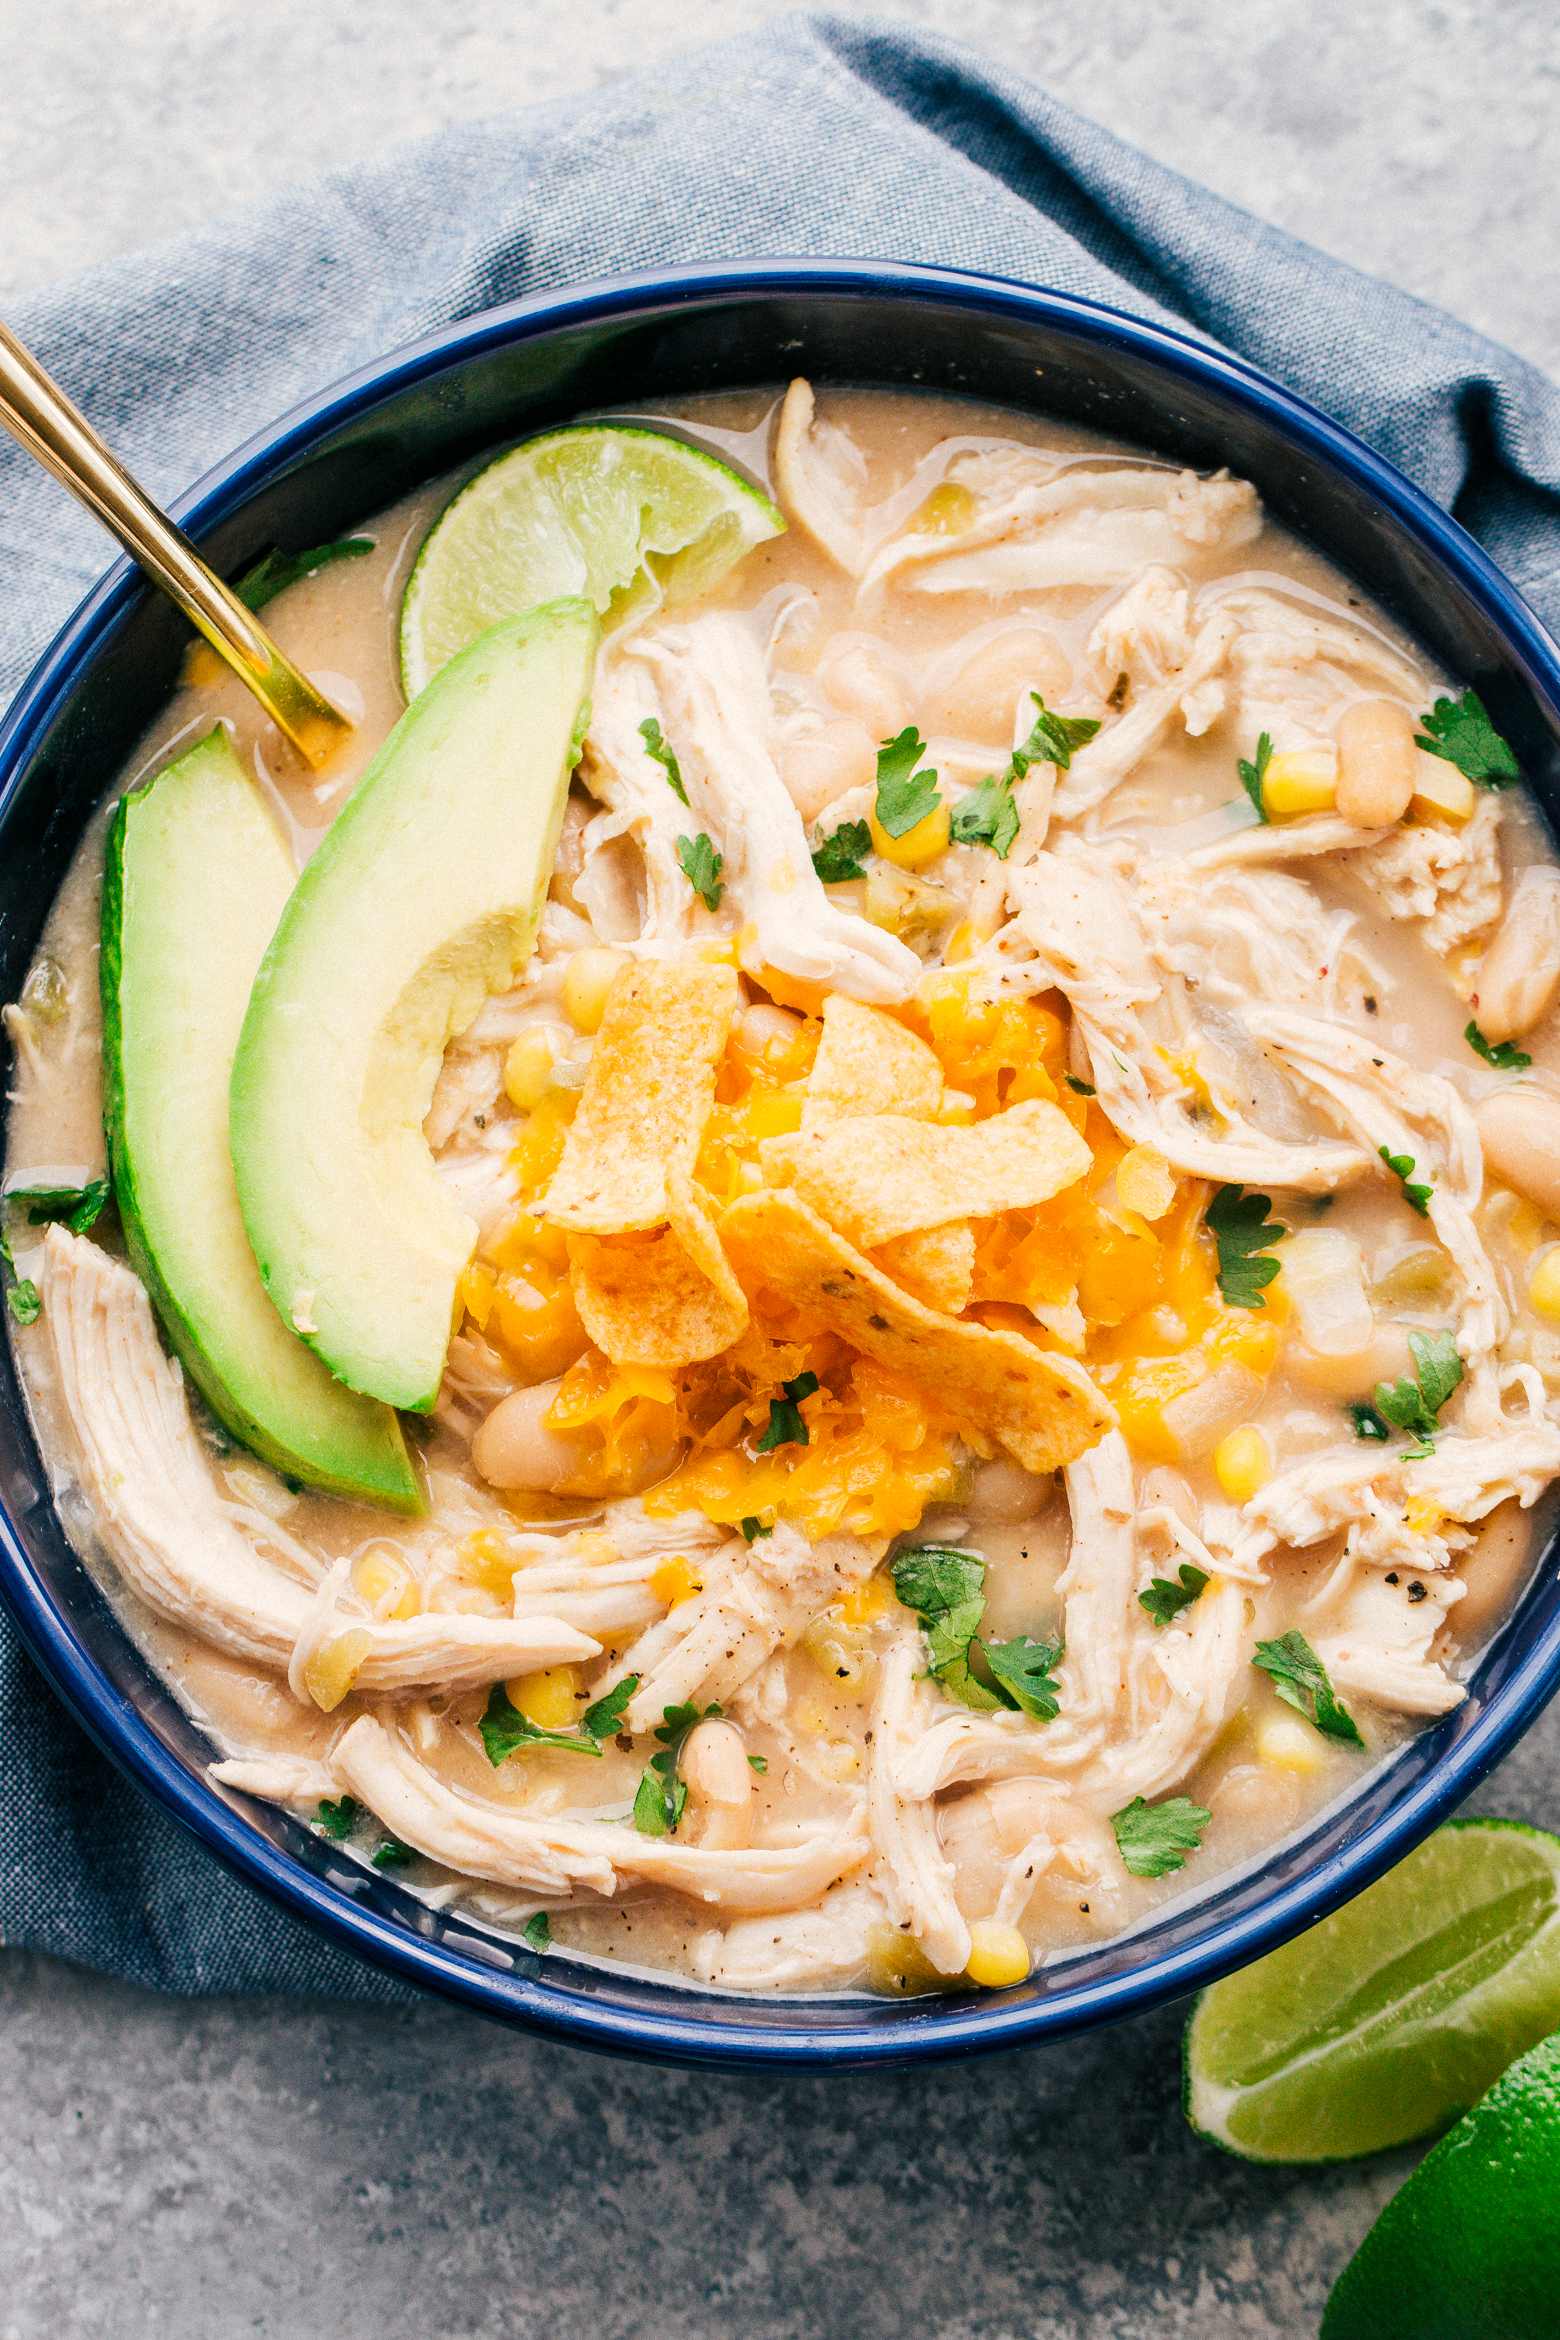 white bean chicken chili in a blue bowl served with sliced avocado and frito chips on top by The Food Cafe